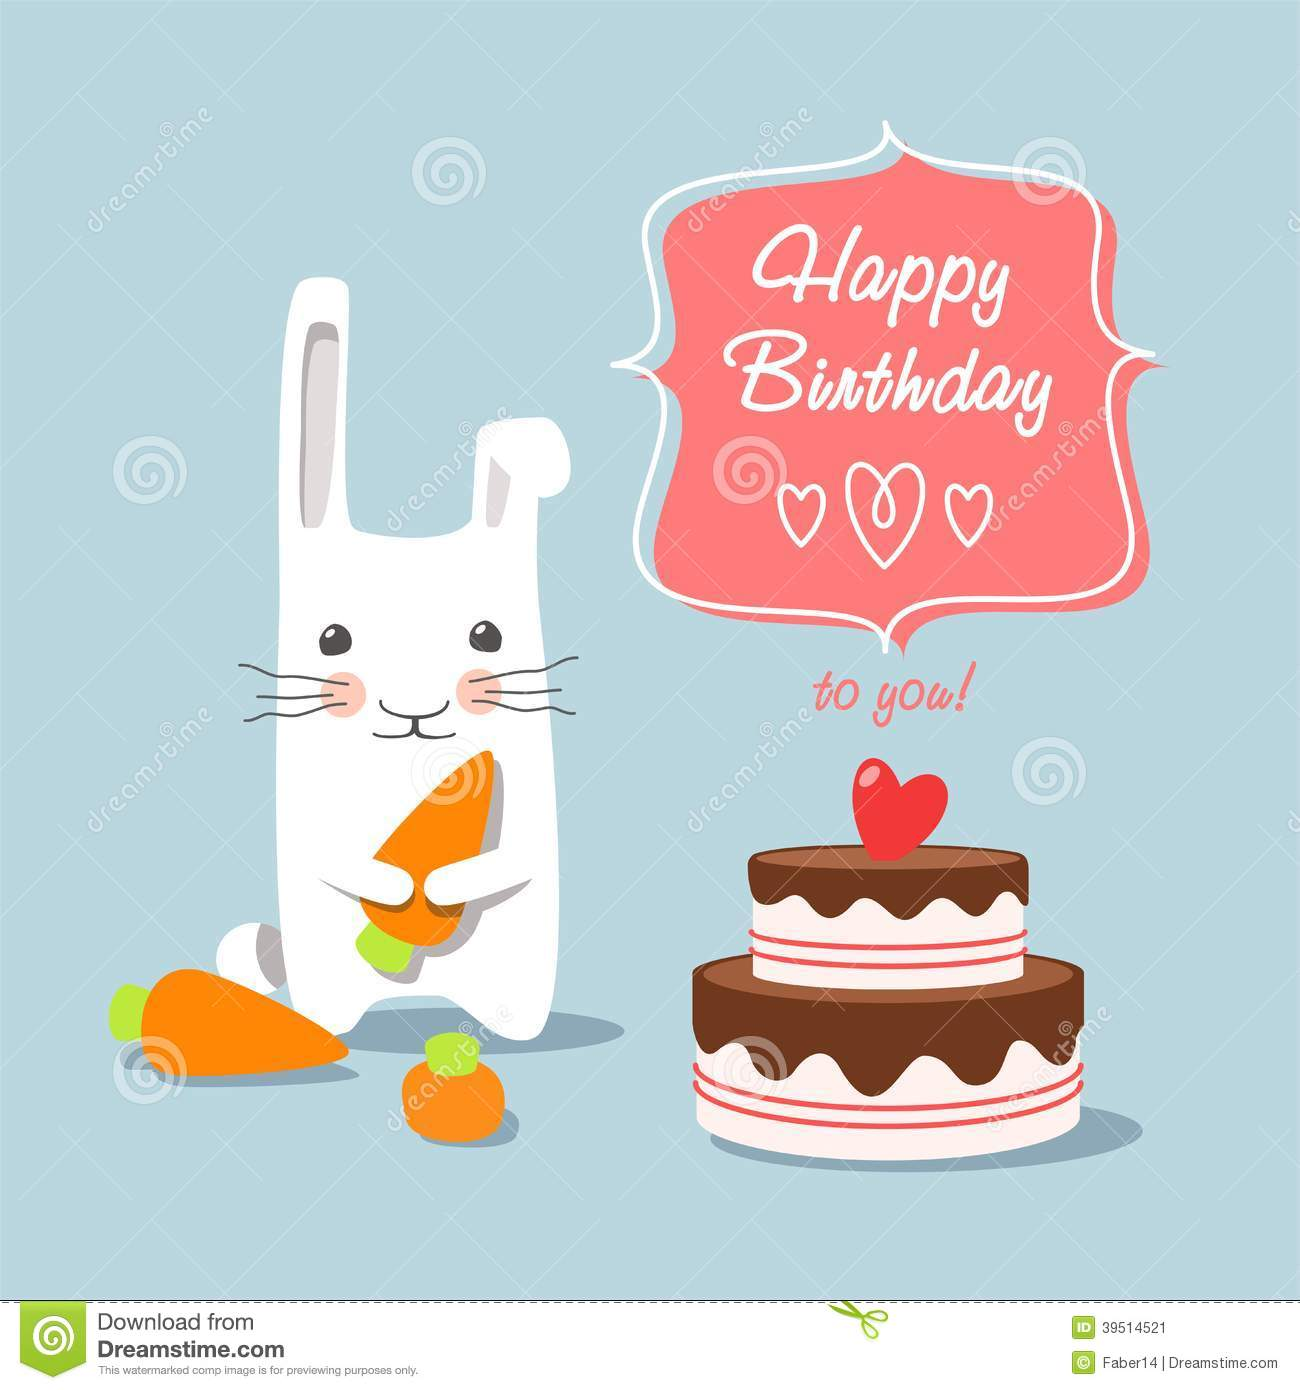 Birthday greetings - bunny on a blue background